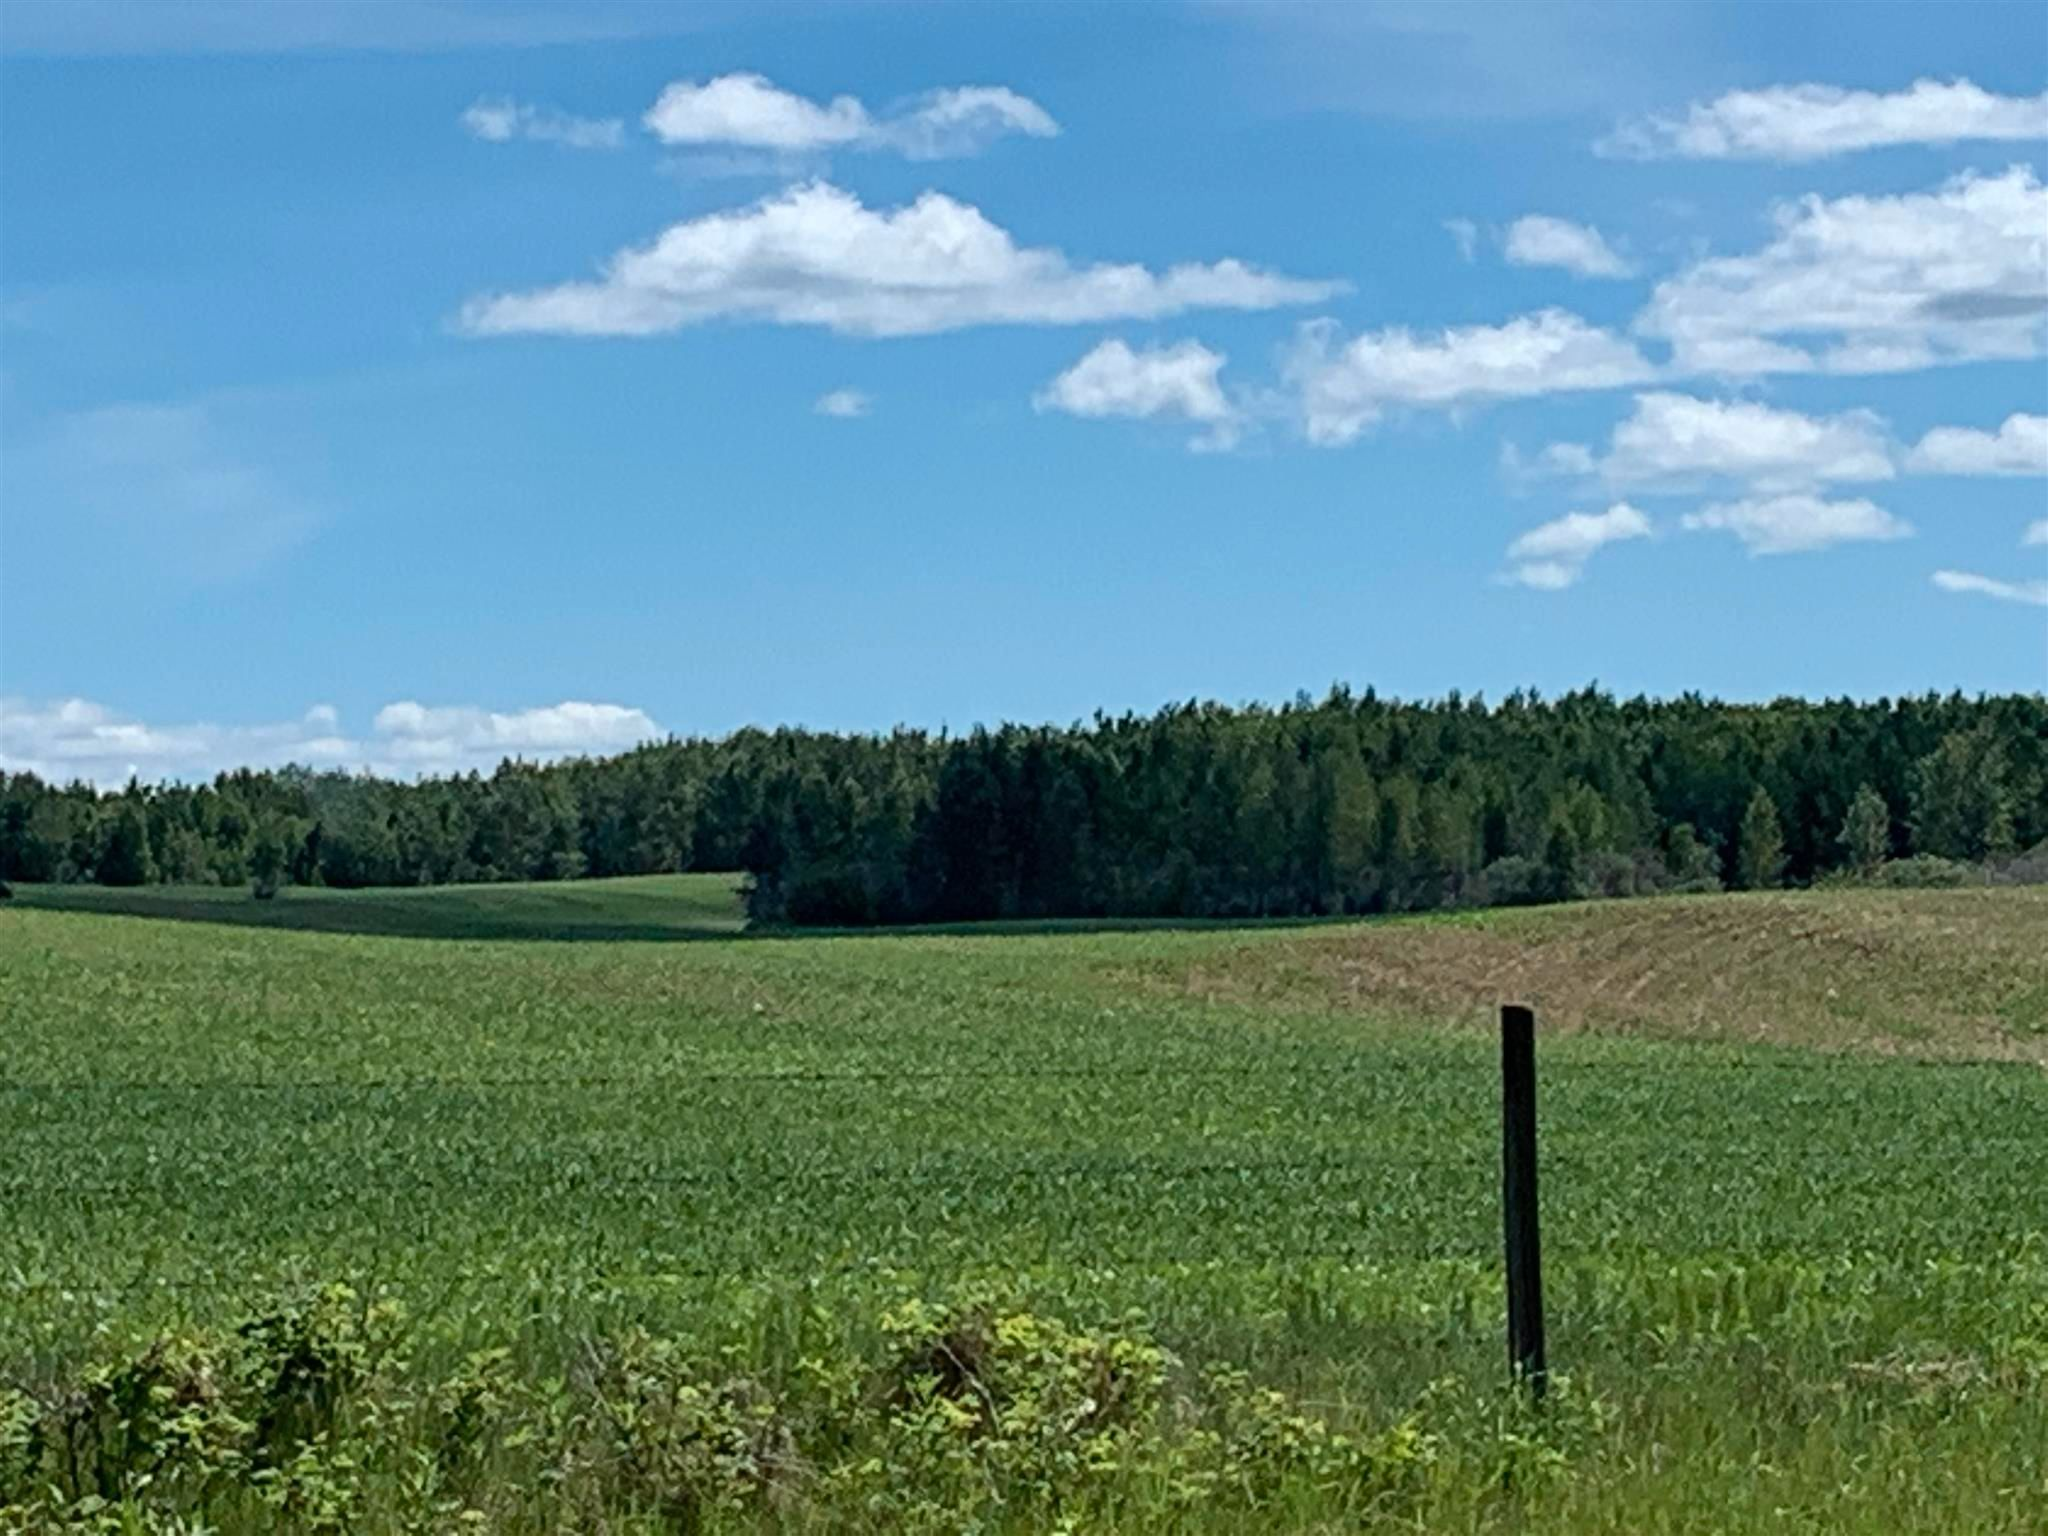 Main Photo: TWP 475 RR 31: Rural Leduc County Rural Land/Vacant Lot for sale : MLS®# E4244953